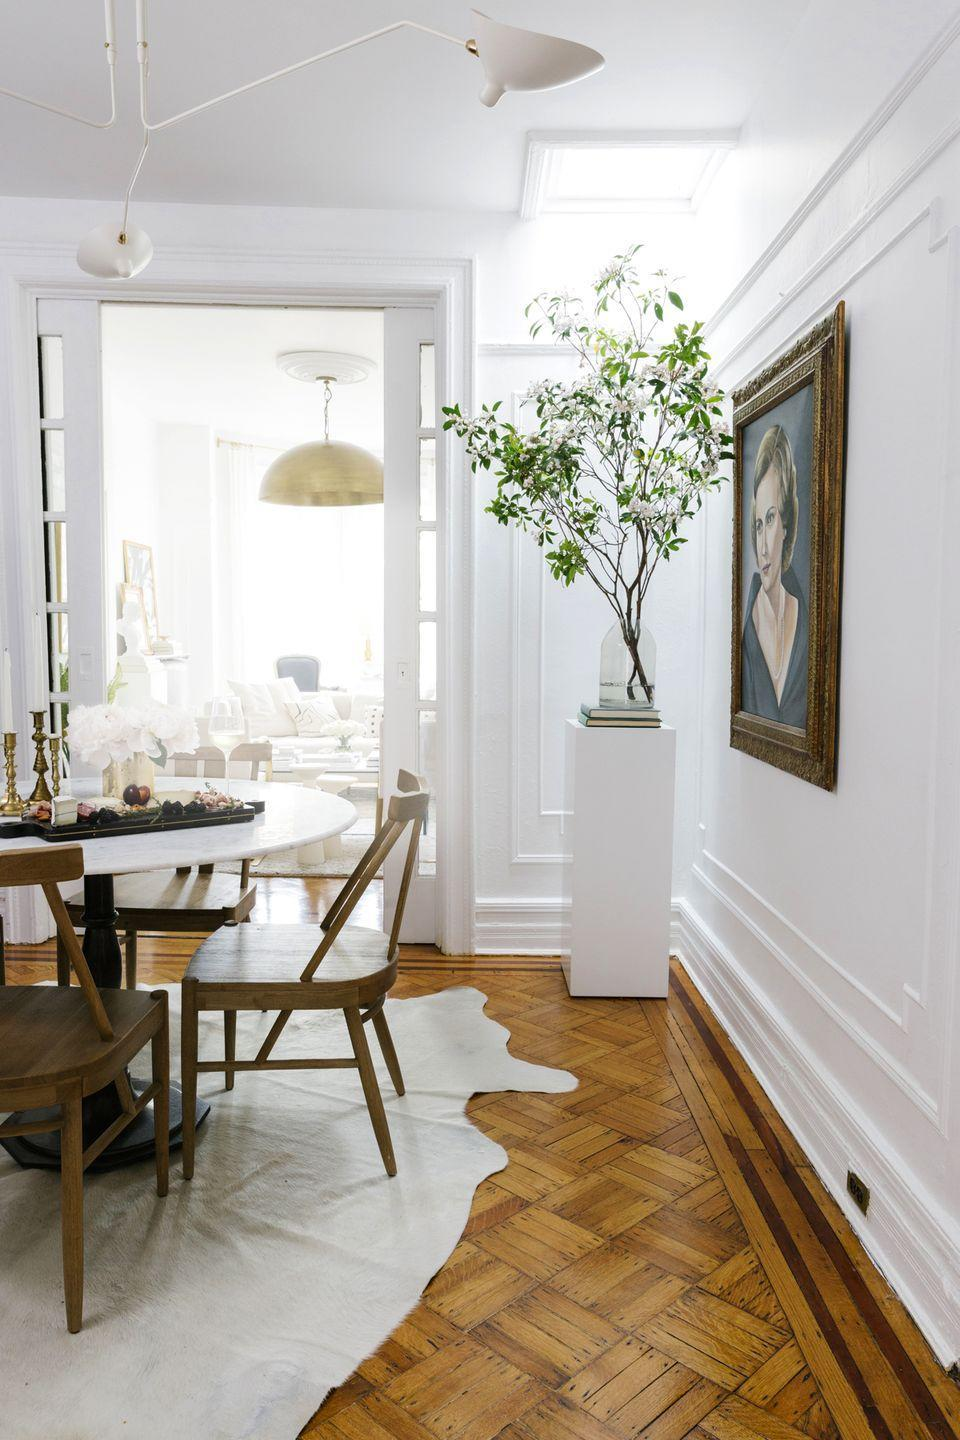 <p>Paint a wooden pedestal in any solid color of your choice, and then use it to play up different heights in your space with stacked books and fresh greens. </p>